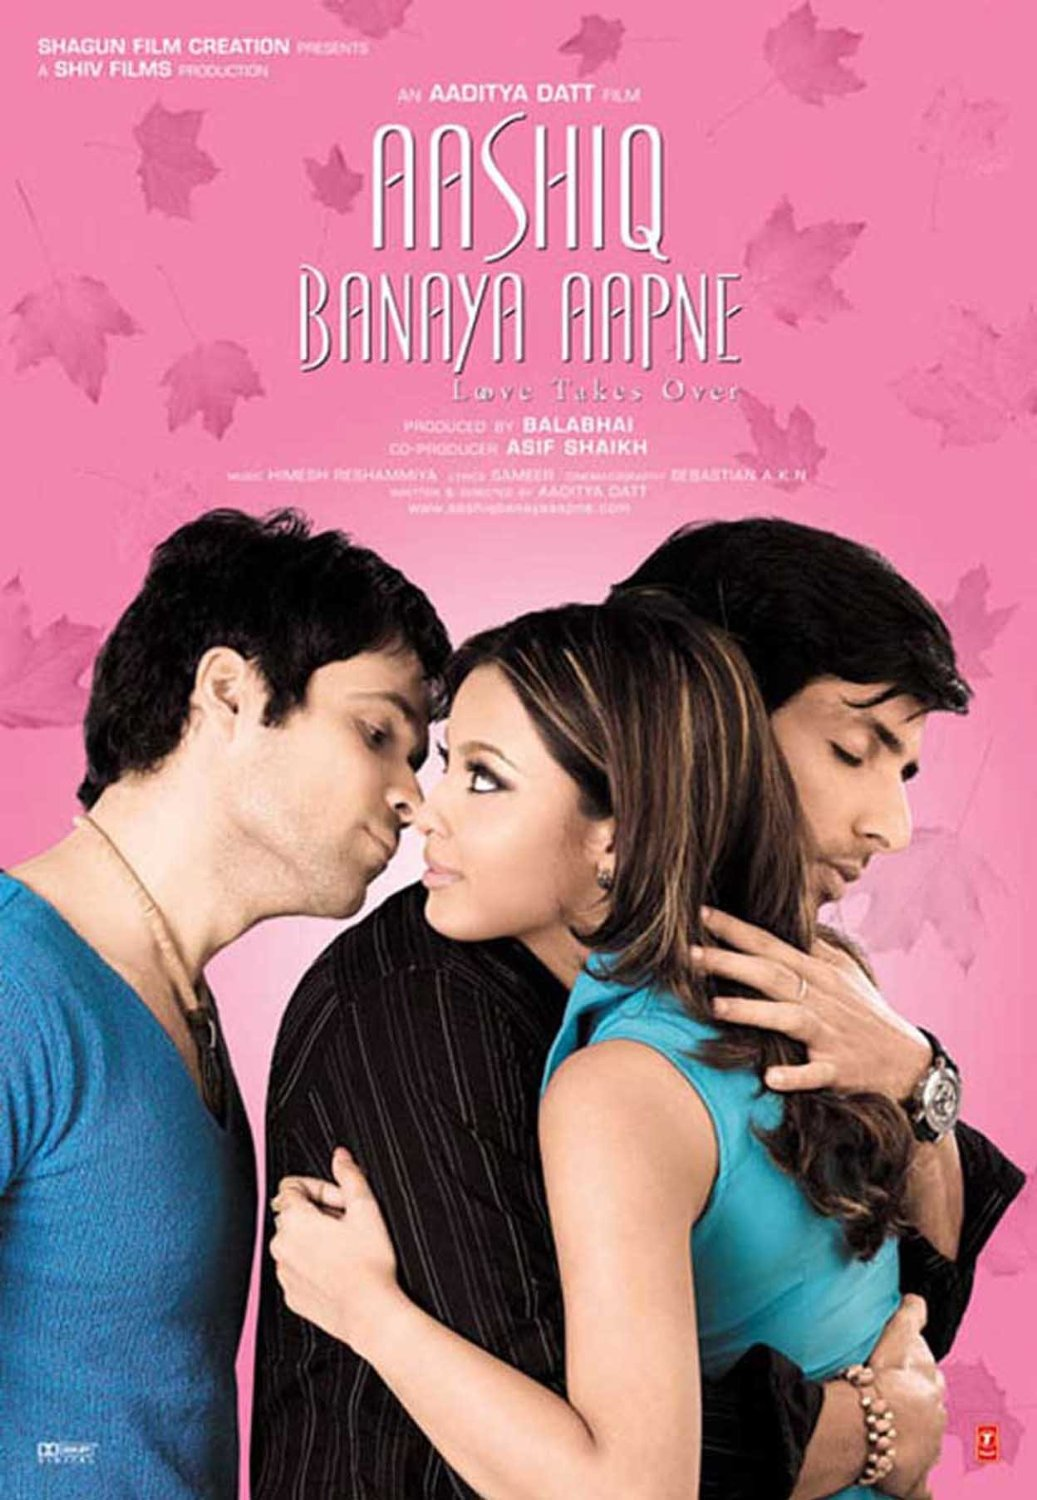 Sonu Sood, Emraan Hashmi, and Tanushree Dutta in Aashiq Banaya Aapne: Love Takes Over (2005)